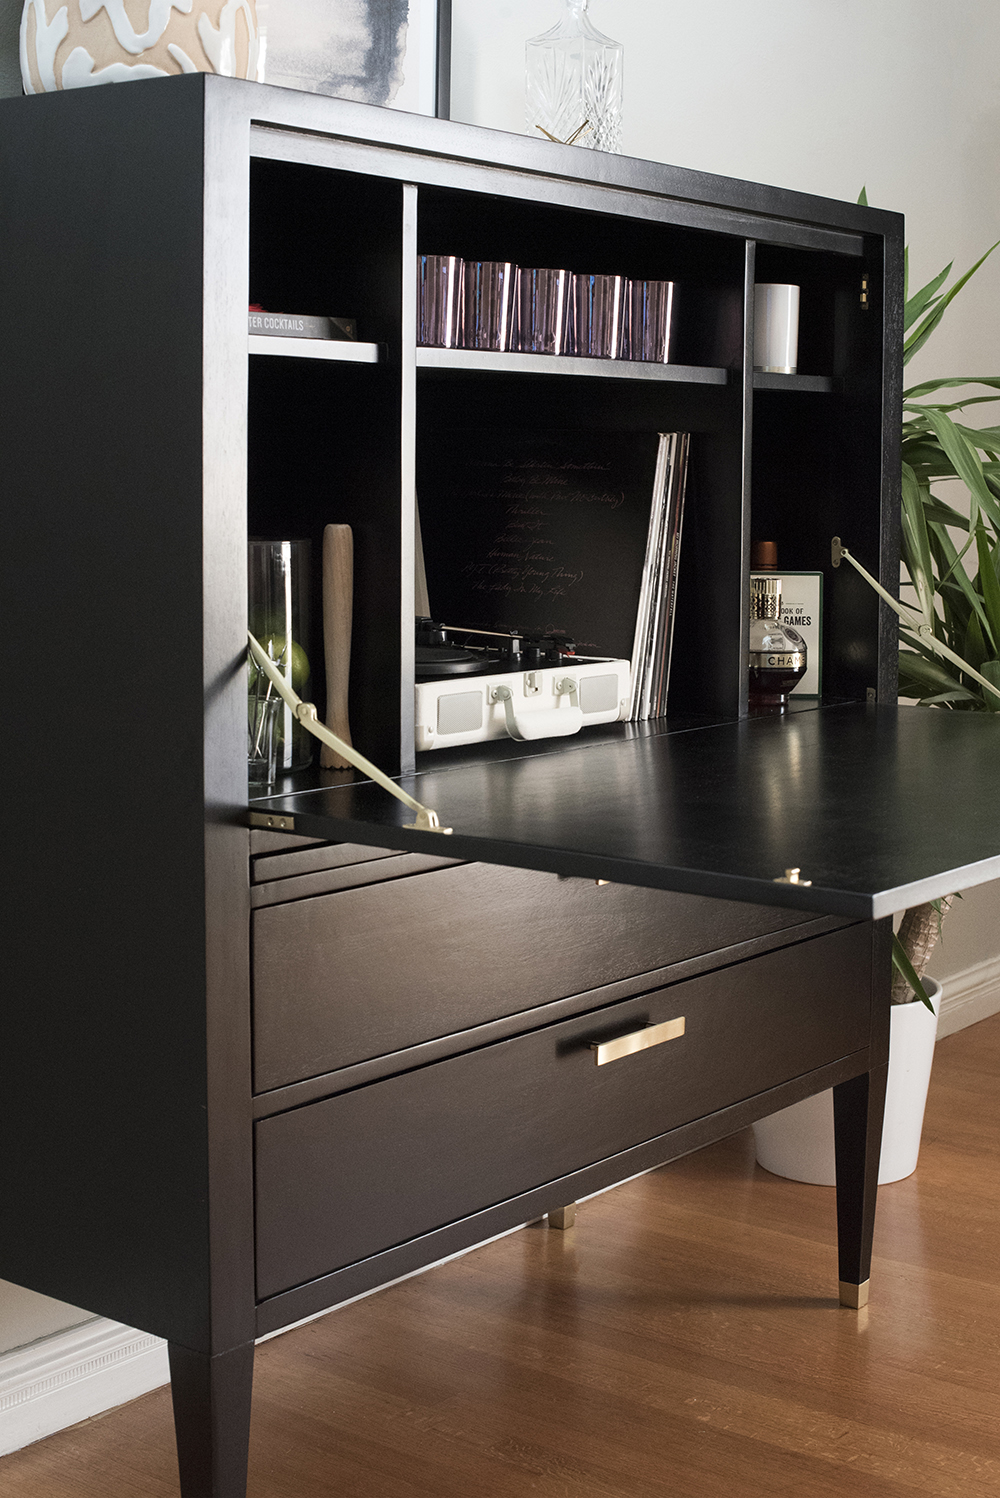 Styling a Glam Bar Cabinet - roomfortuesday.com